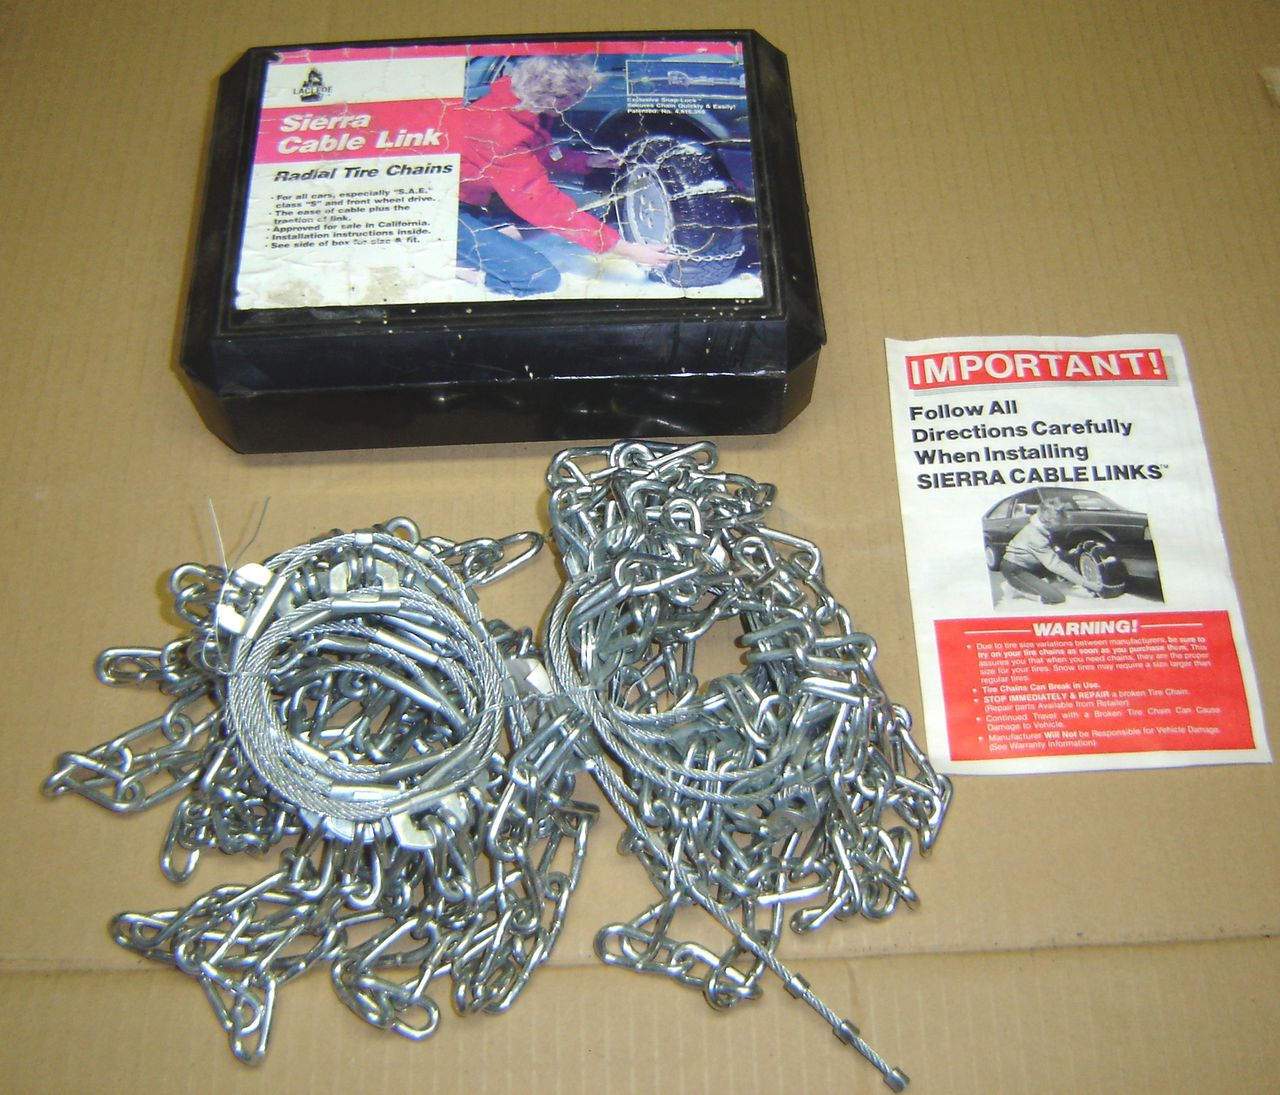 Laclede Sierra Cable Link Radial Tire Chains 1926 Ebay